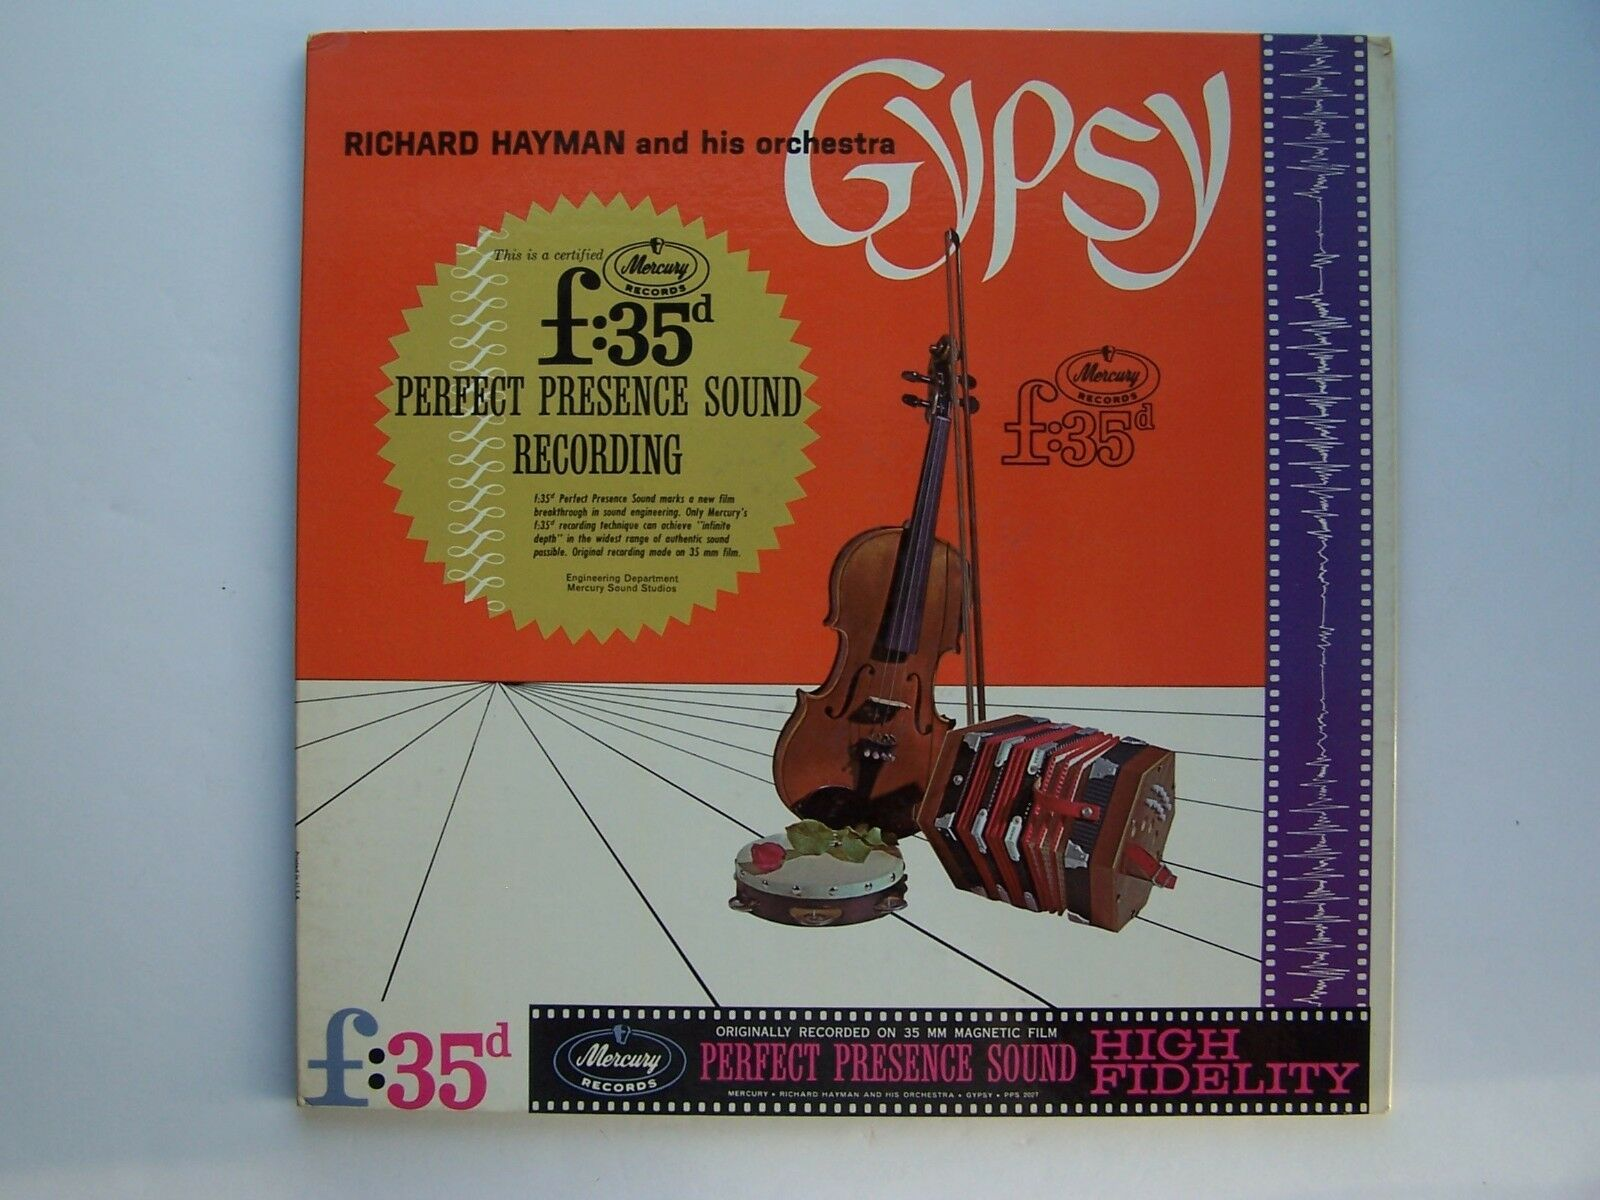 Richard Hayman And His Orchestra - Gypsy Vinyl LP Recor